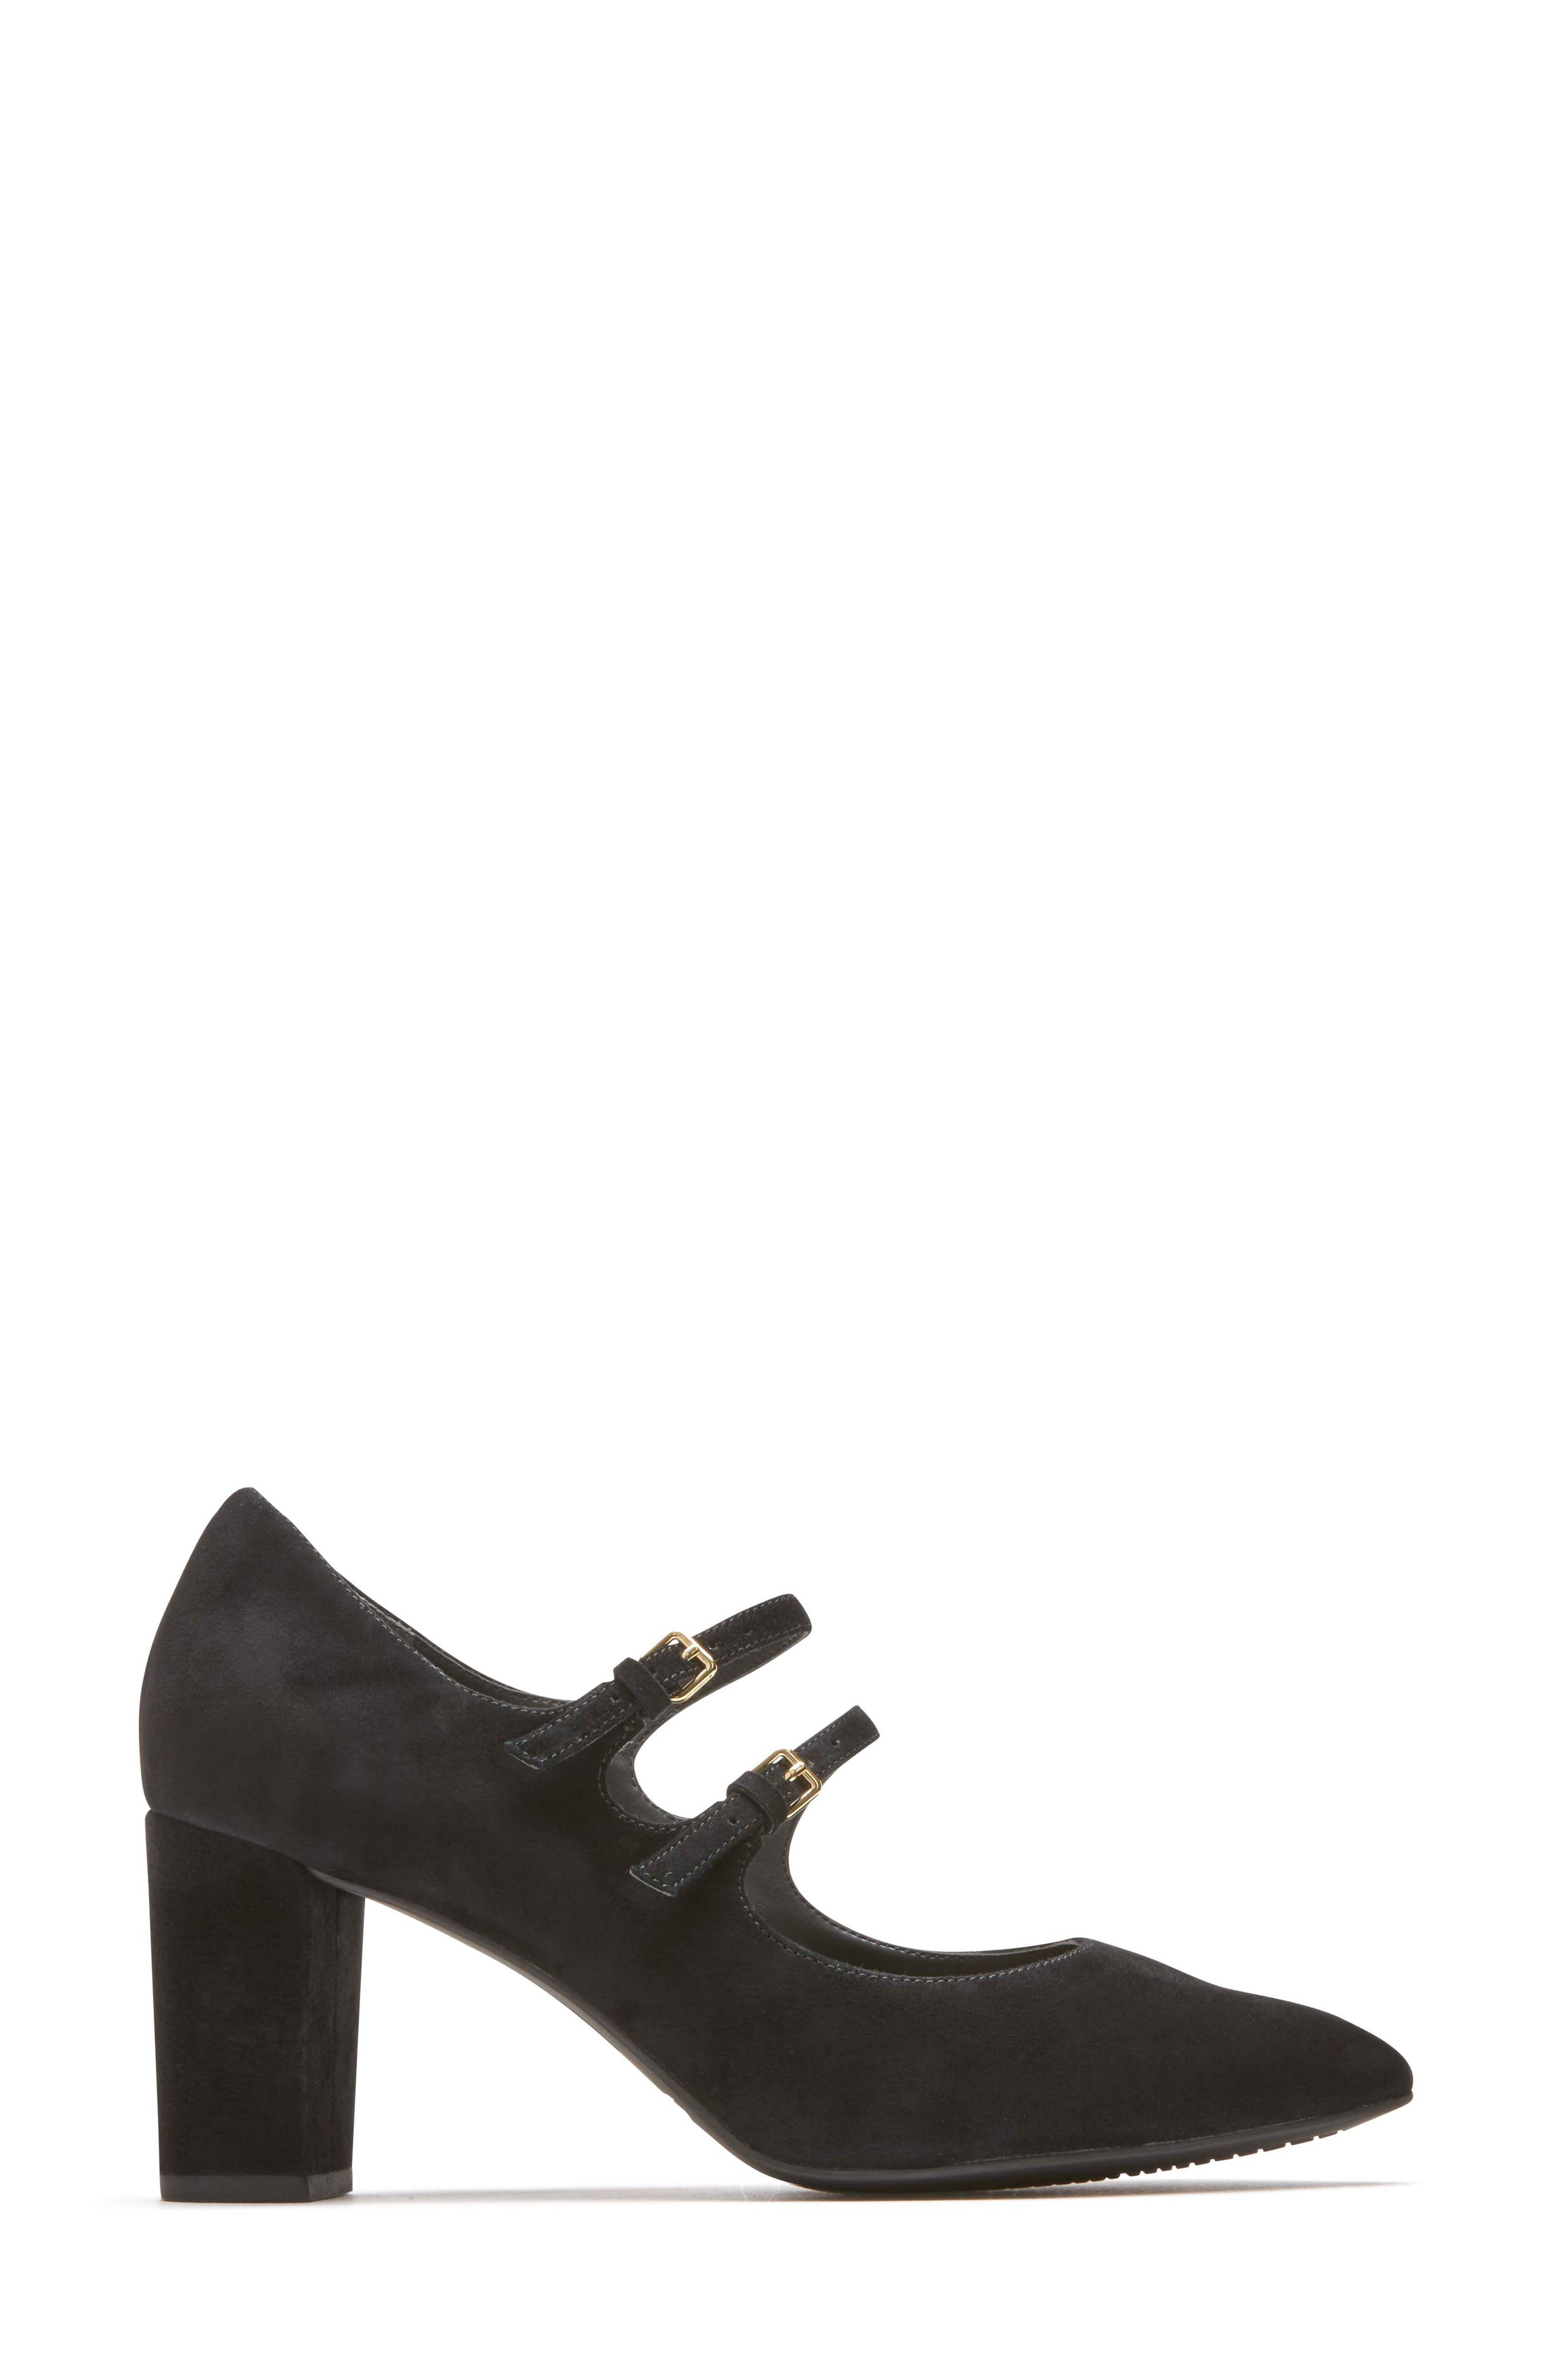 Violina Luxe Double Strap Mary Jane Pump,                             Alternate thumbnail 3, color,                             BLACK SUEDE